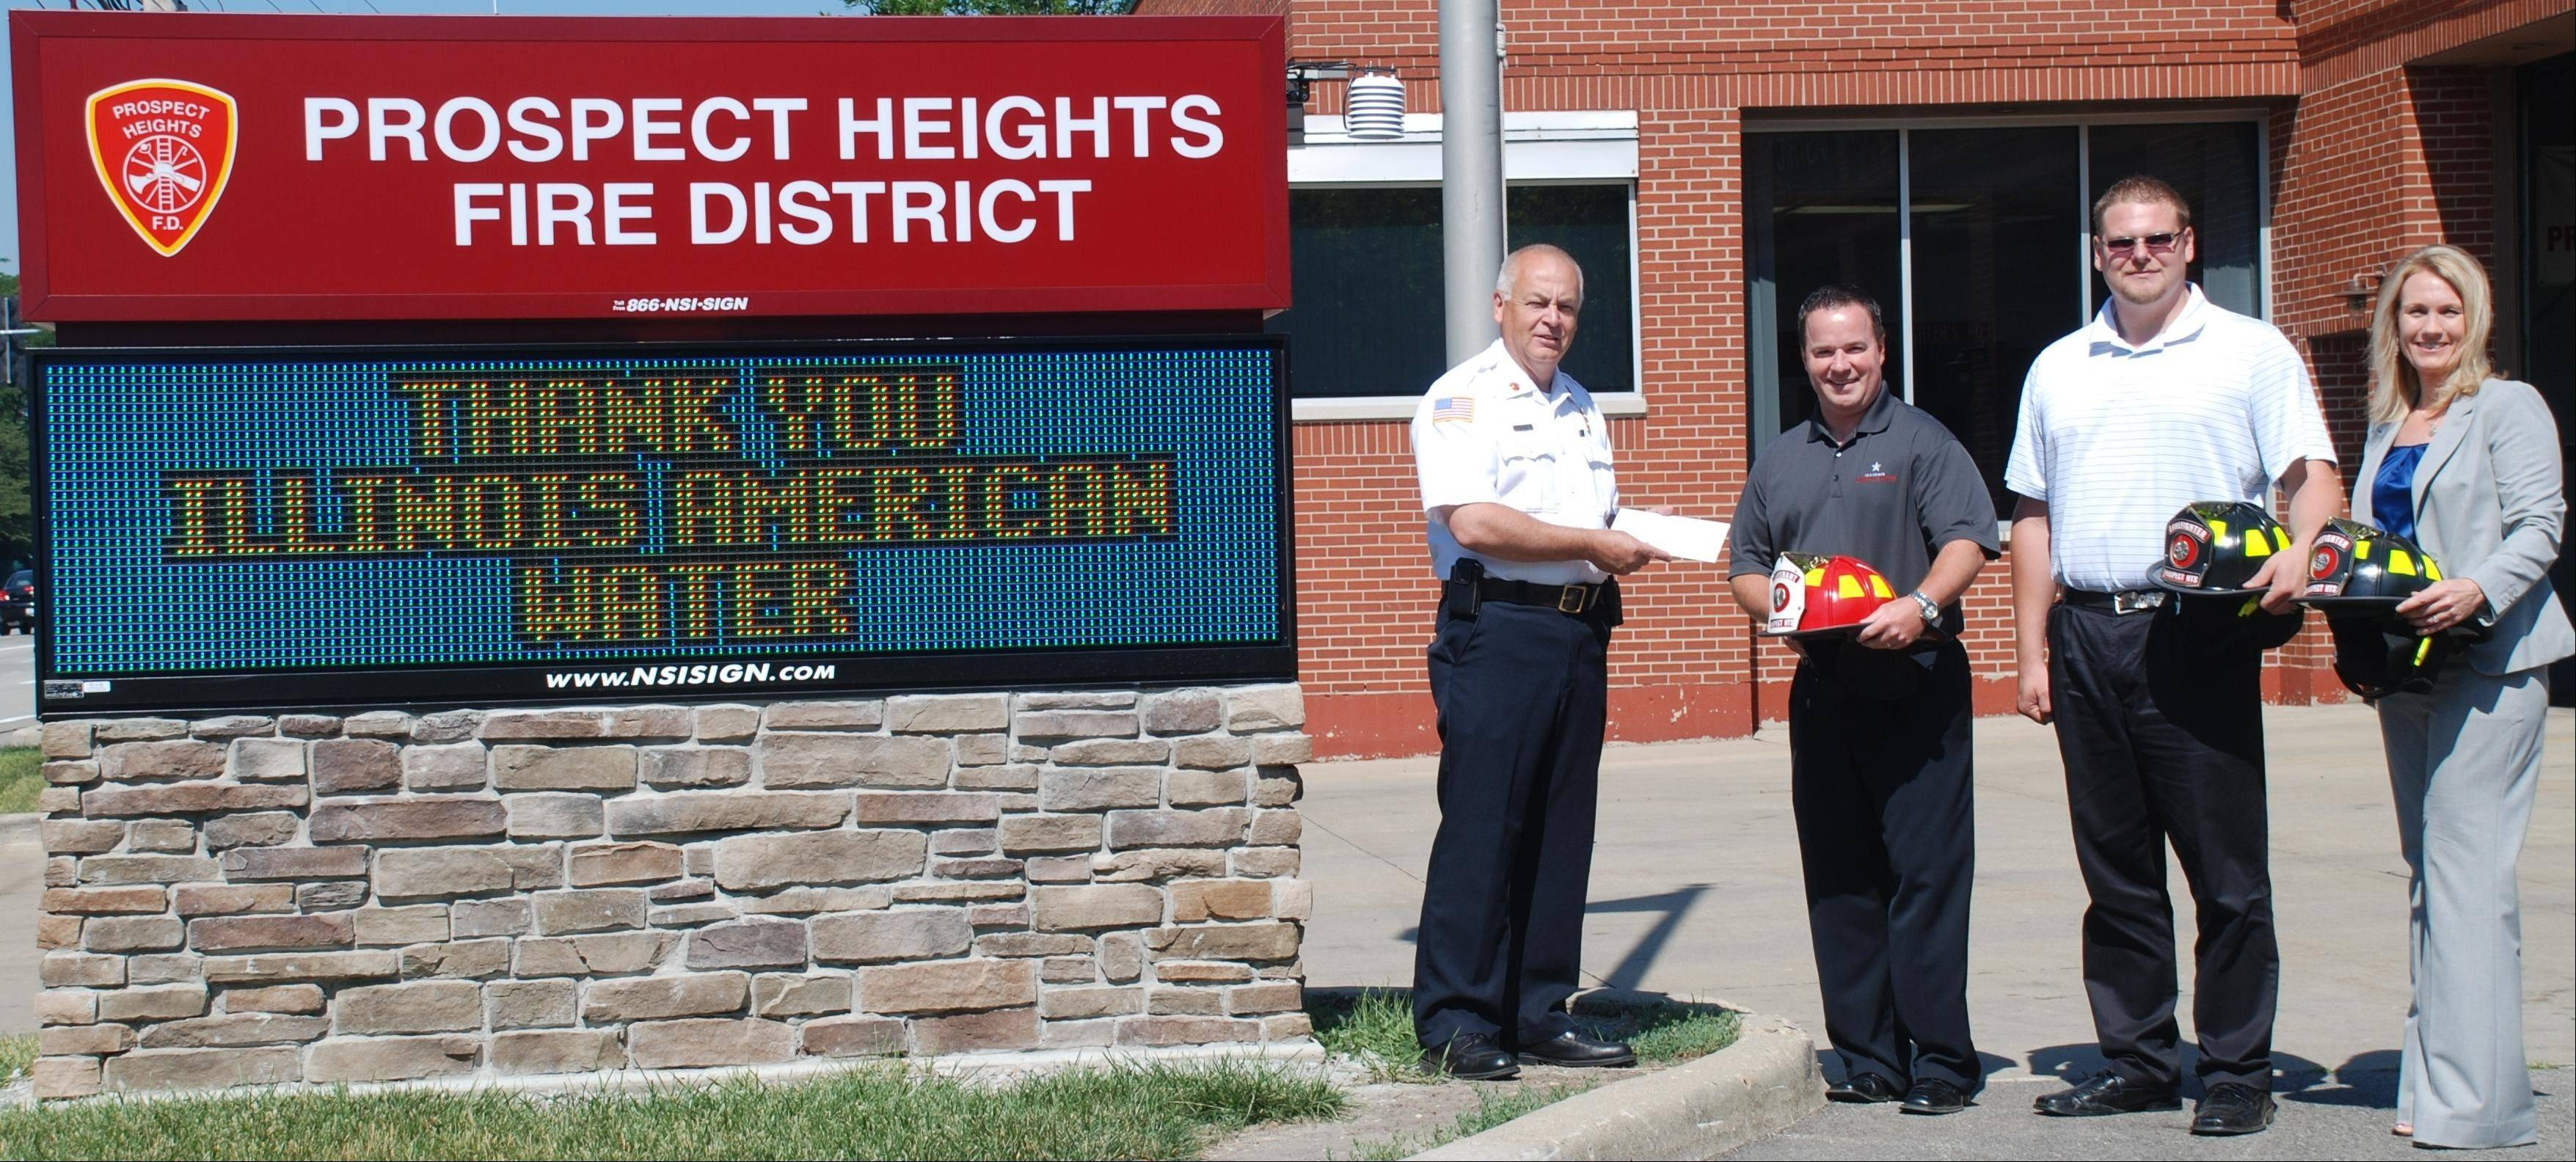 Fire Chief Donald Gould, Michael Smyth, Timothy Morris and Susan Gram from Illinois American Water, who presented a grant check for $1,500 to the Prospect Heights Fire Protection District for the purchase of new fire helmets.